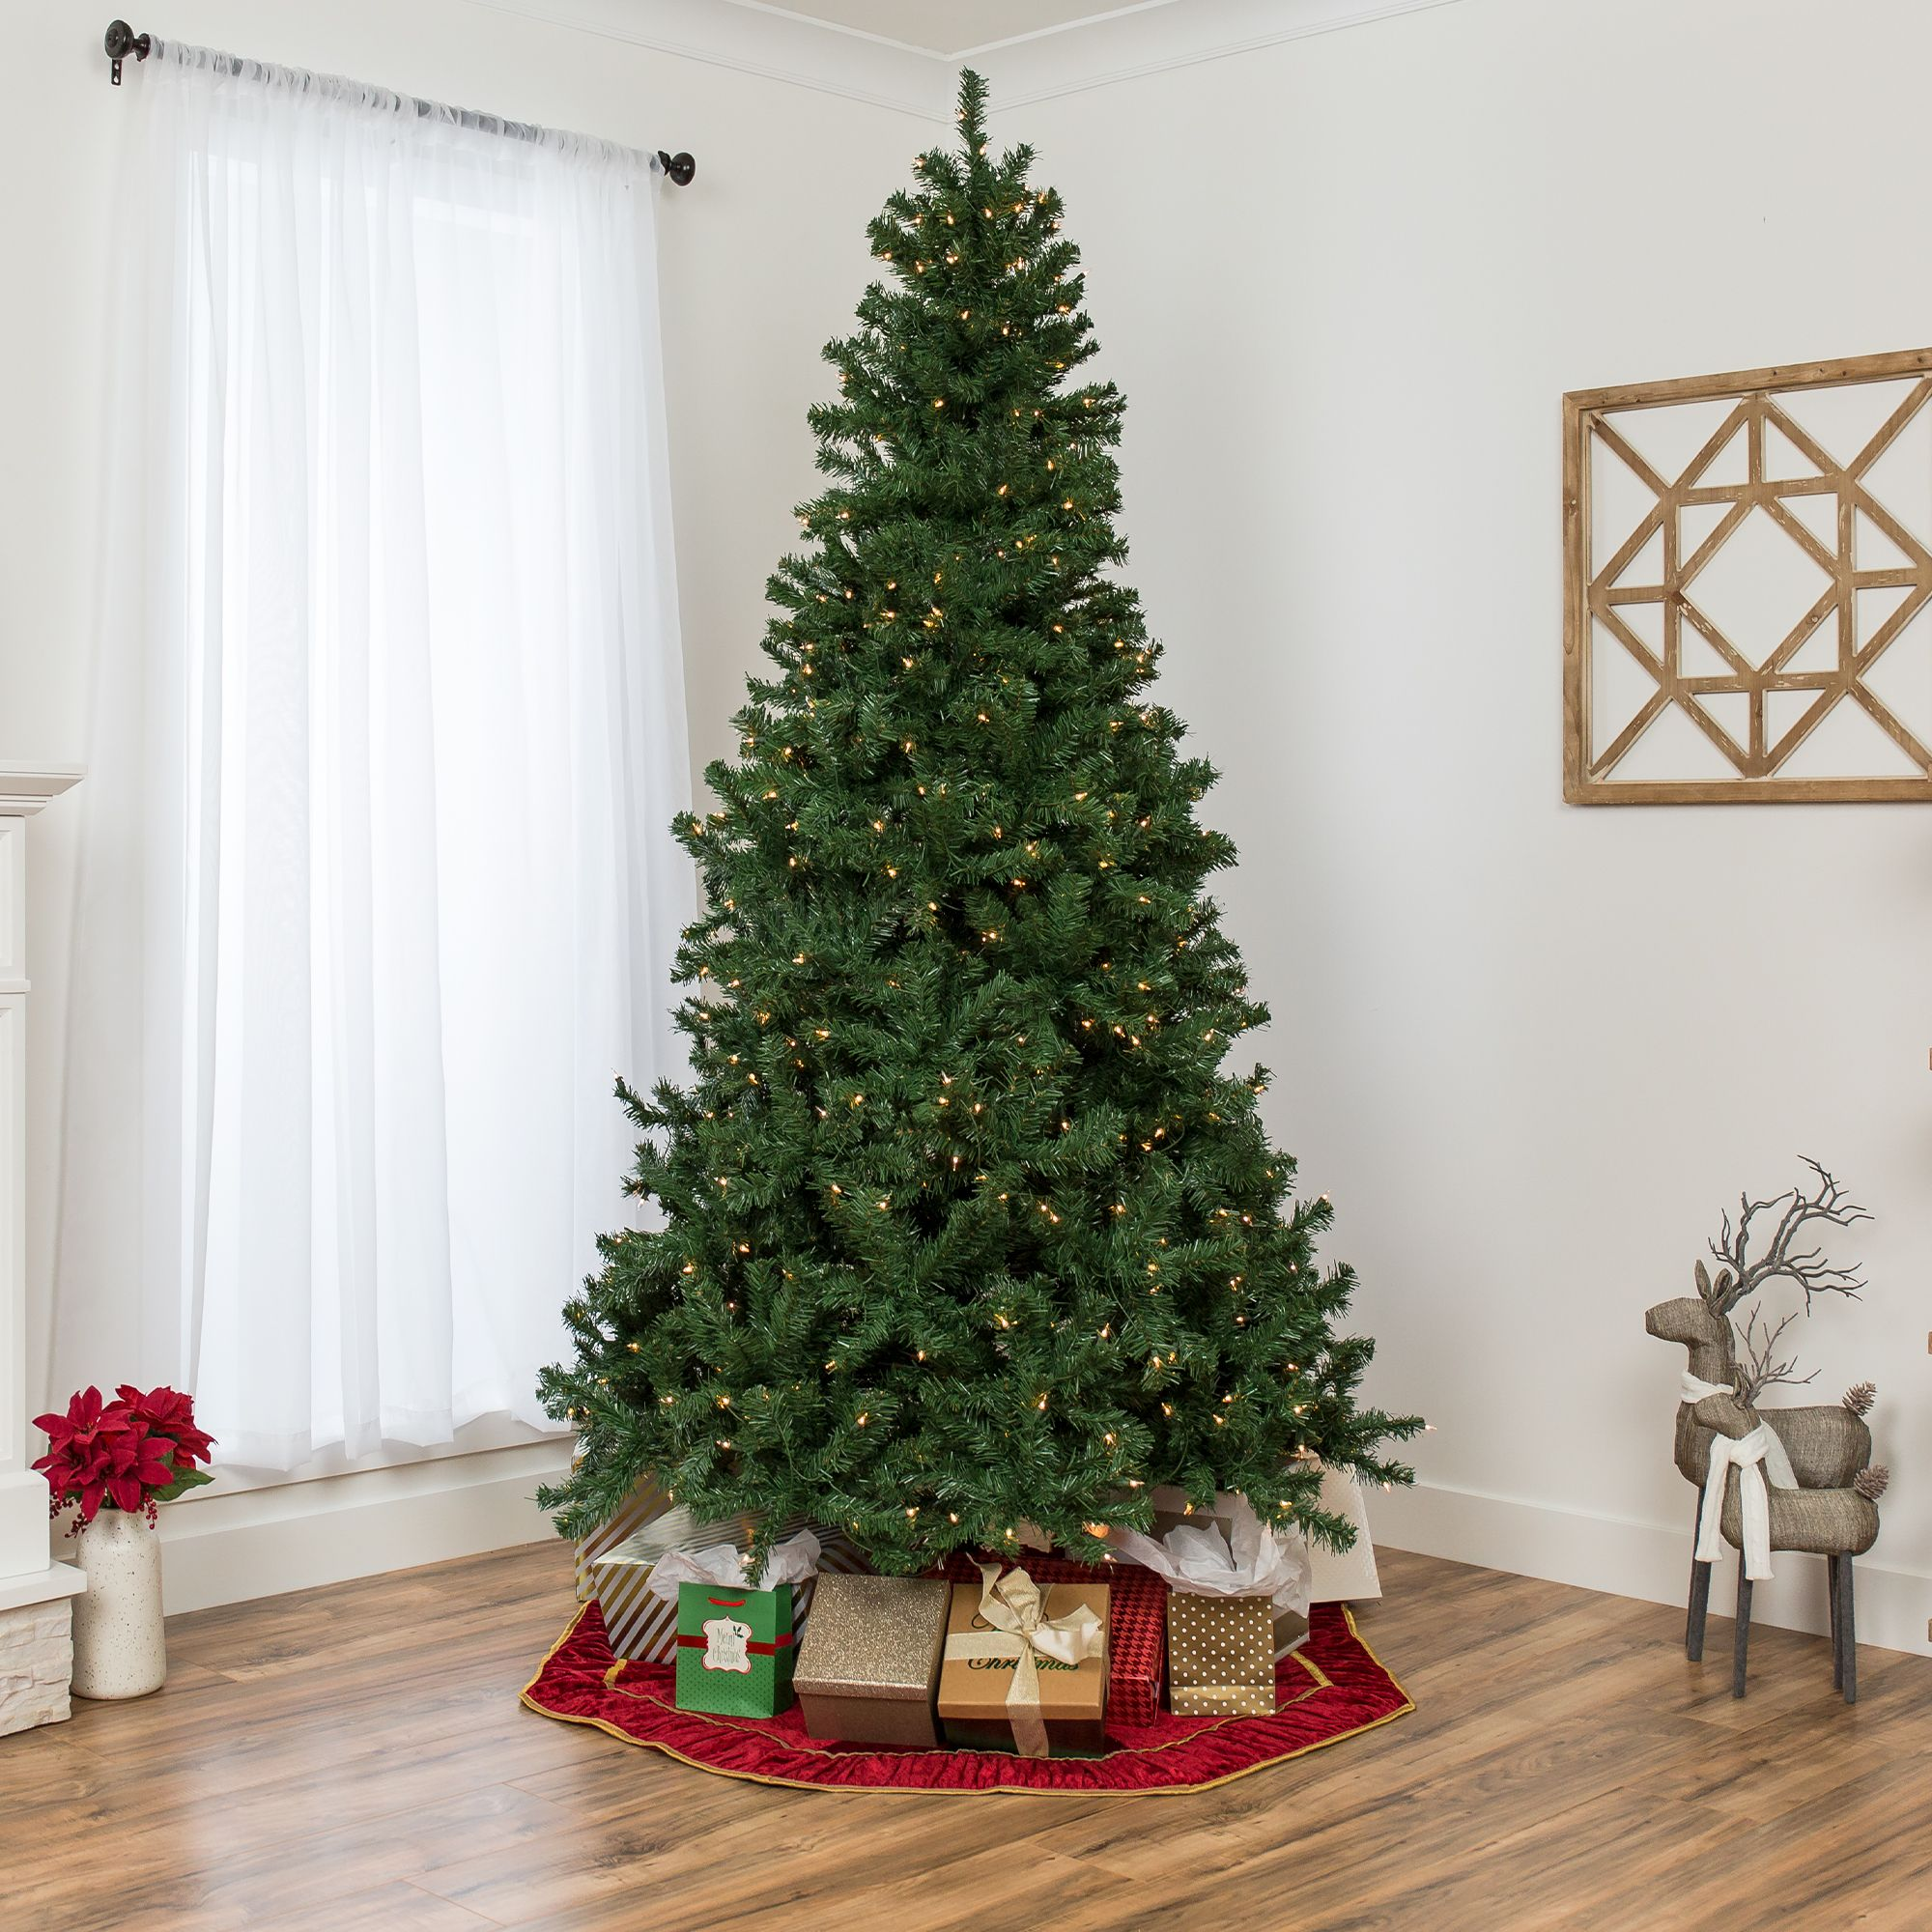 Home In 2020 Pre Lit Christmas Tree Christmas Tree Office